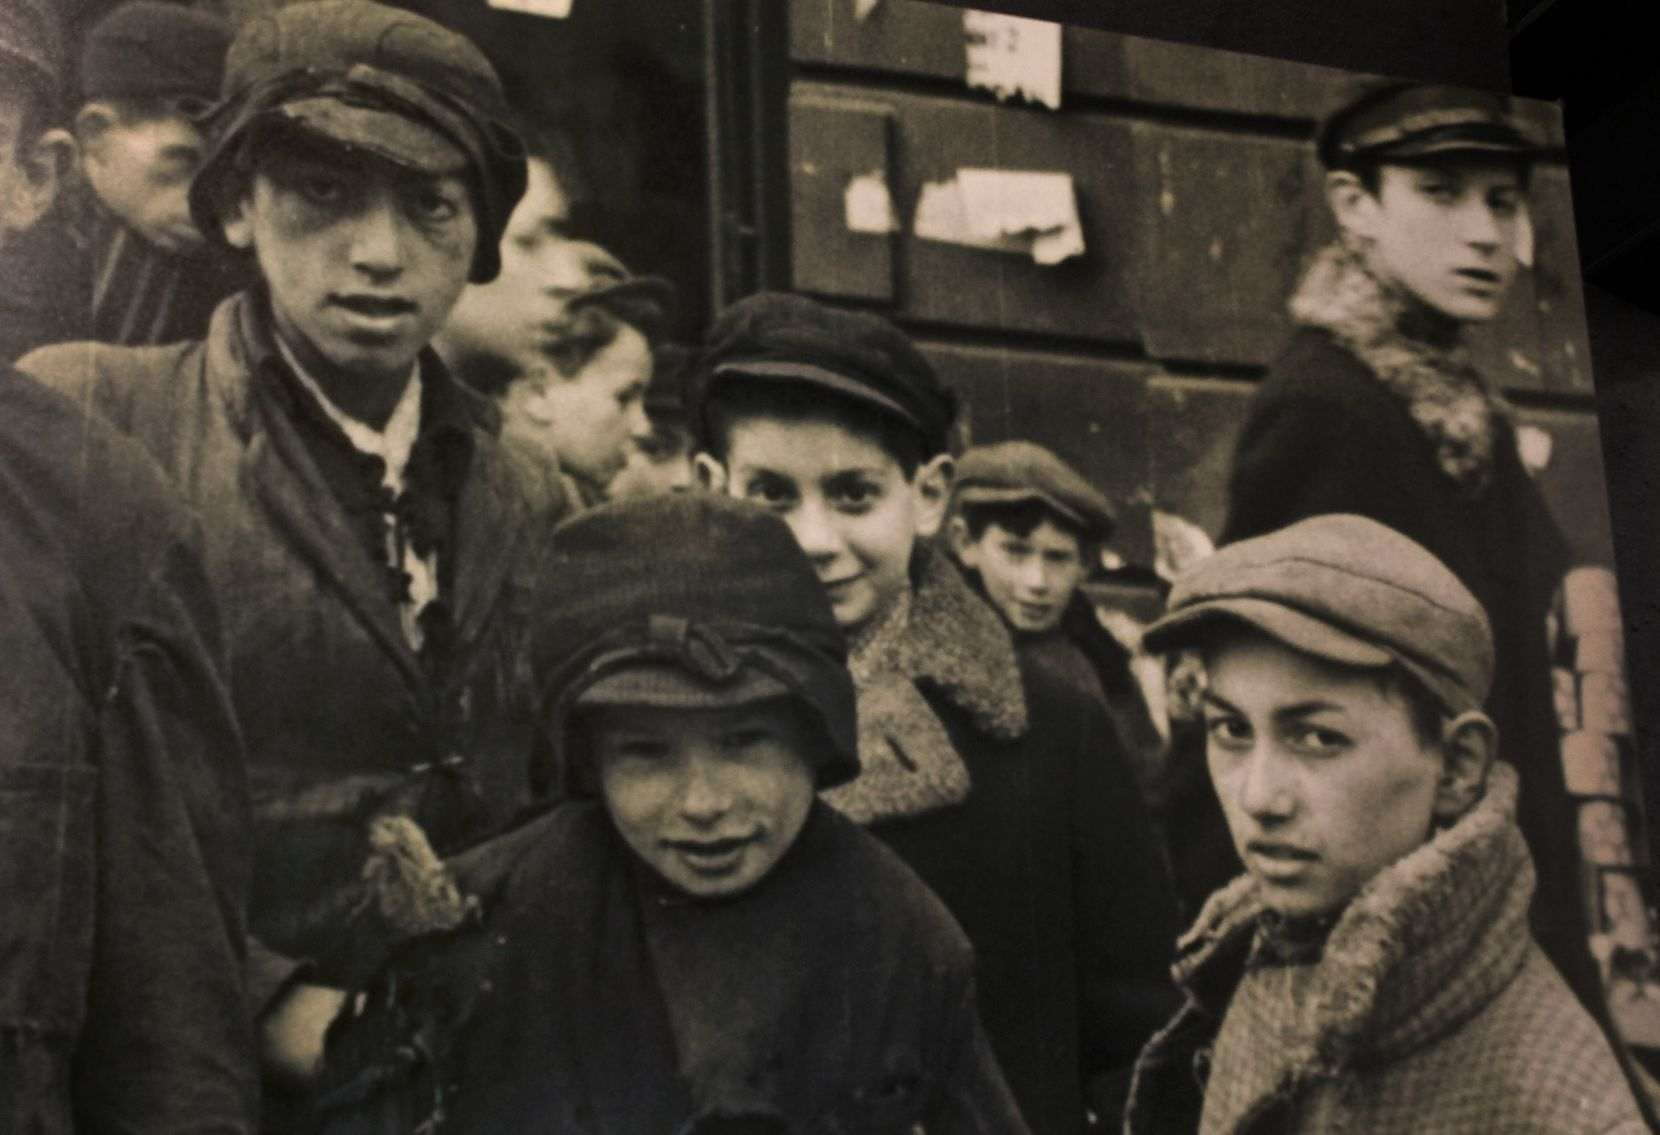 Holocaust survivor Max Glauben (center//third from left, partially obscured) is pictured with other boys in the Warsaw Ghetto prior to his family's deportation to the concentration camps. (Courtesy of Dallas Holocaust and Human Rights Museum)